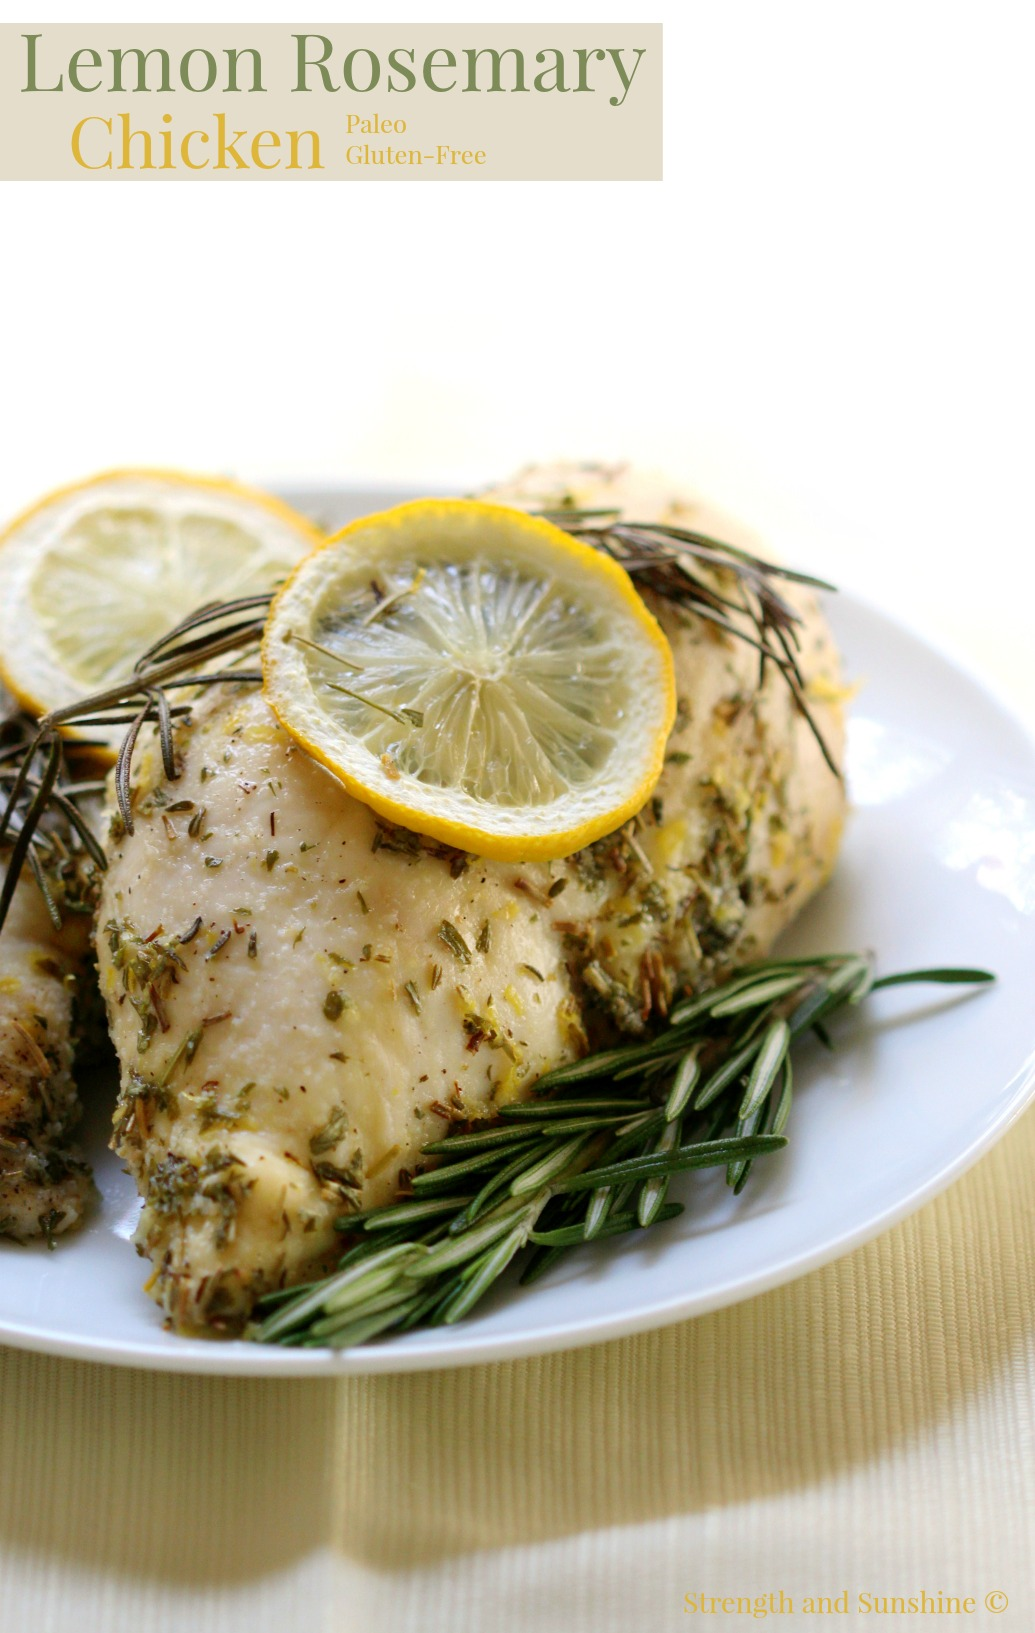 Lemon Rosemary Chicken | Strength and Sunshine @RebeccaGF666 Perfectly baked and zesty lemon rosemary chicken breasts for an easy weeknight dinner recipe. A quick gluten-free and paleo option to flavor up bland chicken with just two simple ingredients! Paired with savory paprika oregano roasted acorn squash and you have a complete family meal!